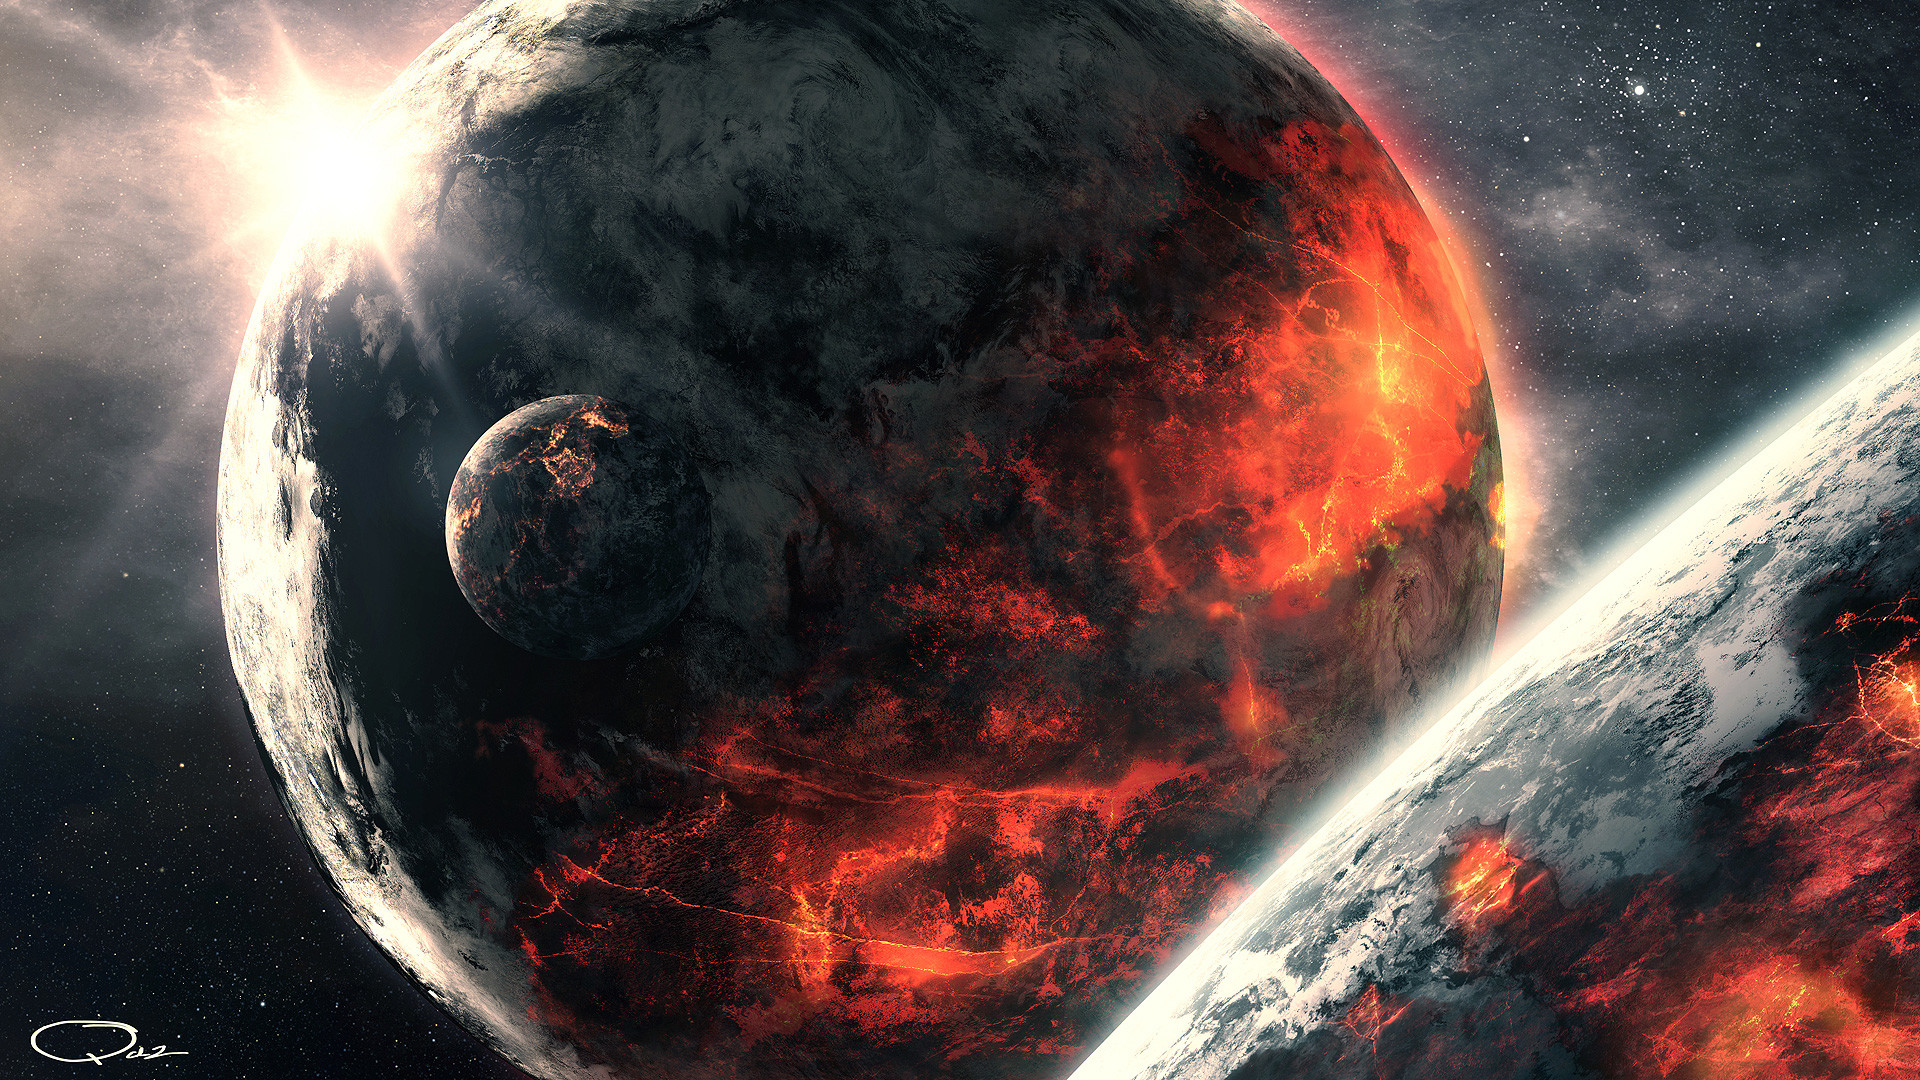 space 1080p wallpaper, full hd volcanic planet in space